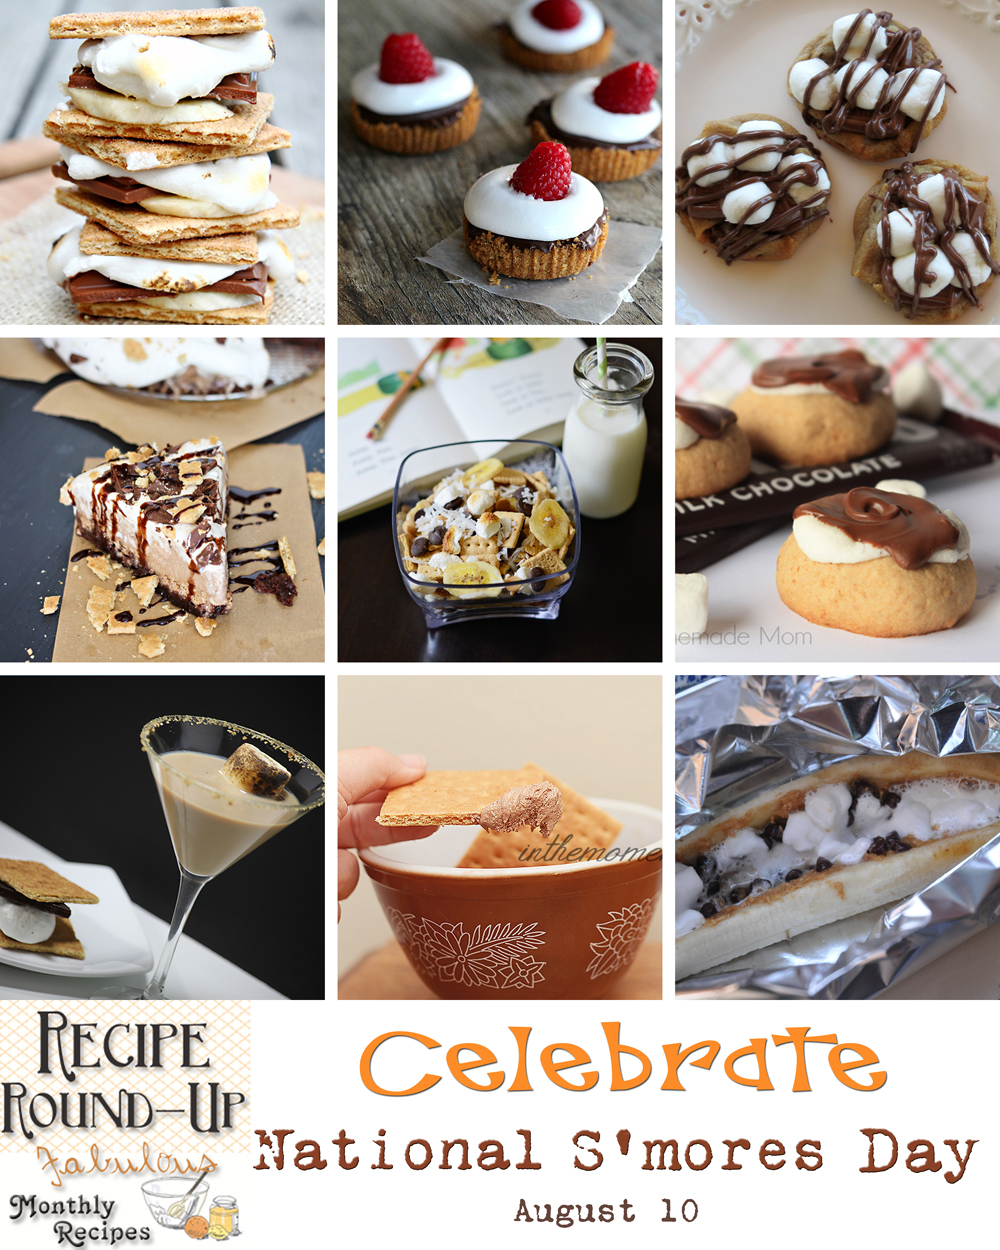 national s'mores day, Frozen Mocha S'Mores Overload